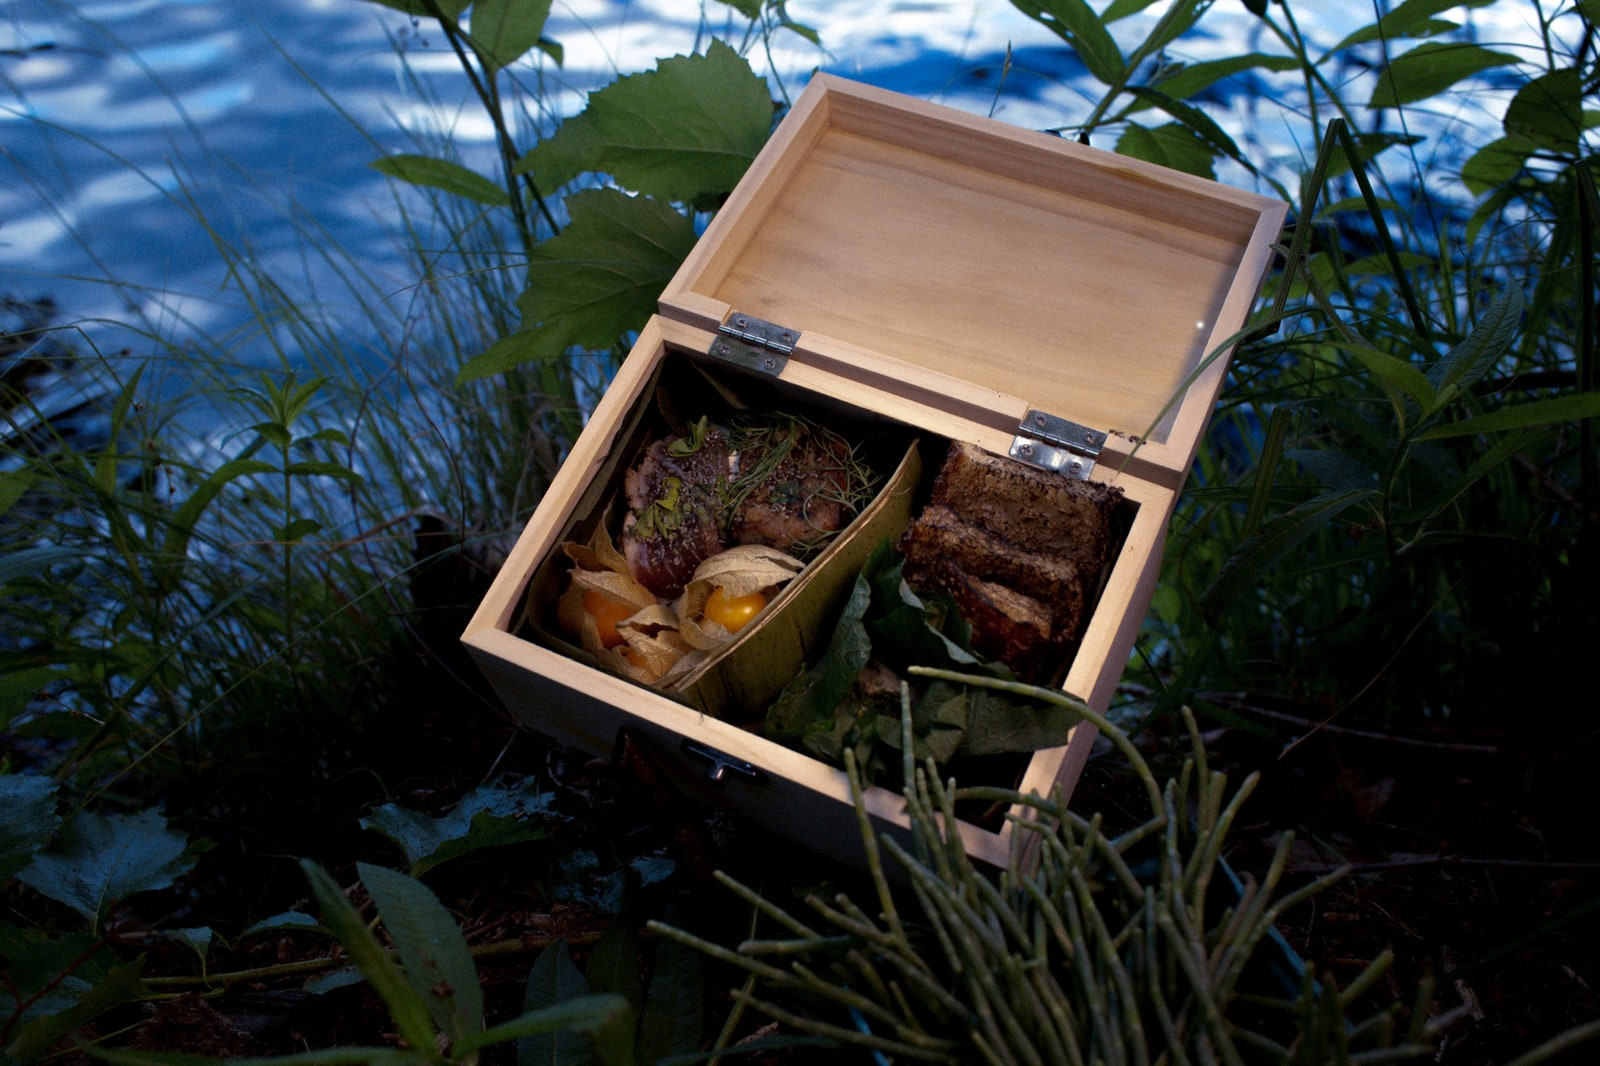 Wooden box with ingredients by body of water.